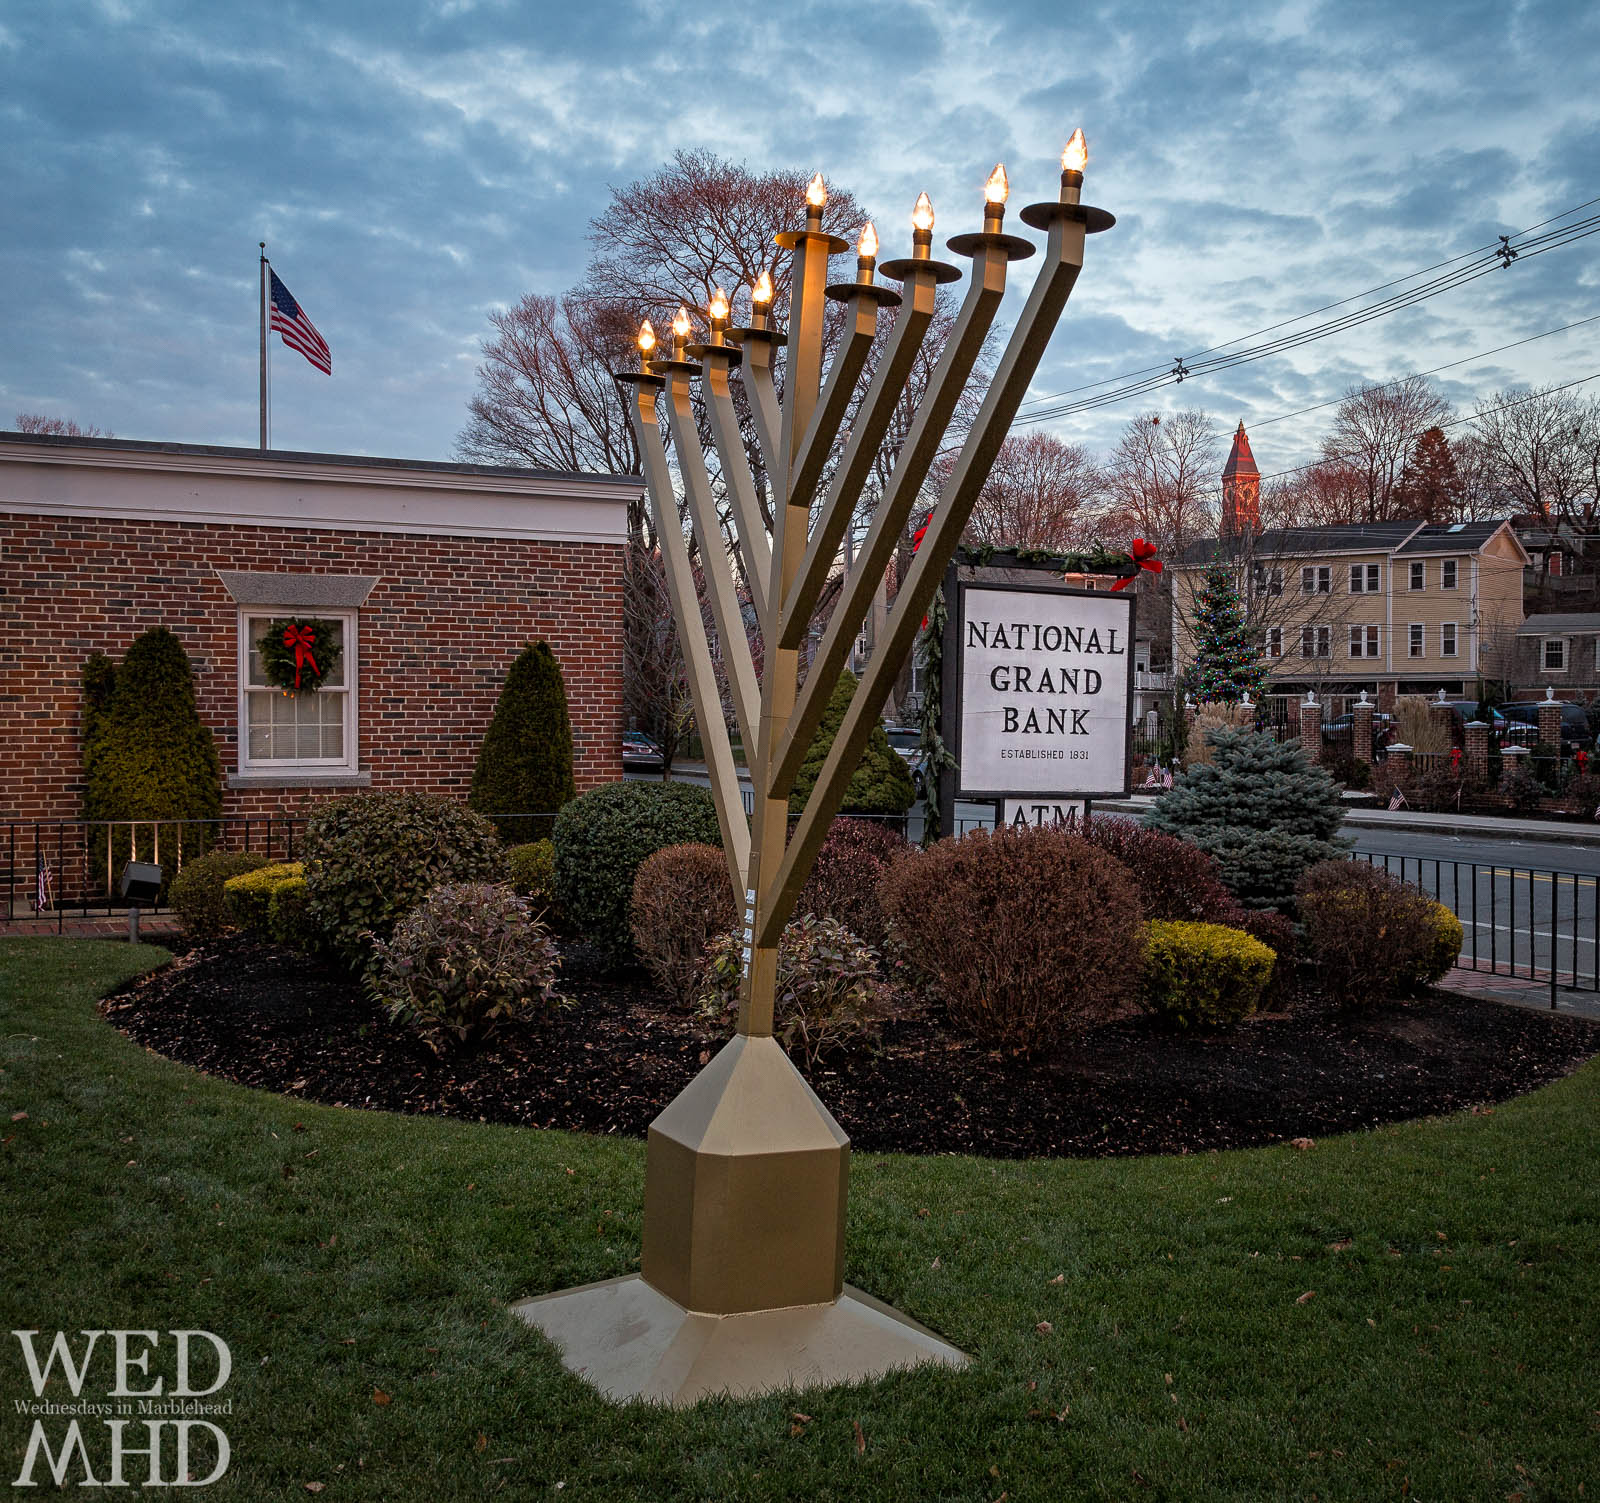 The Menorah at National Grand Bank